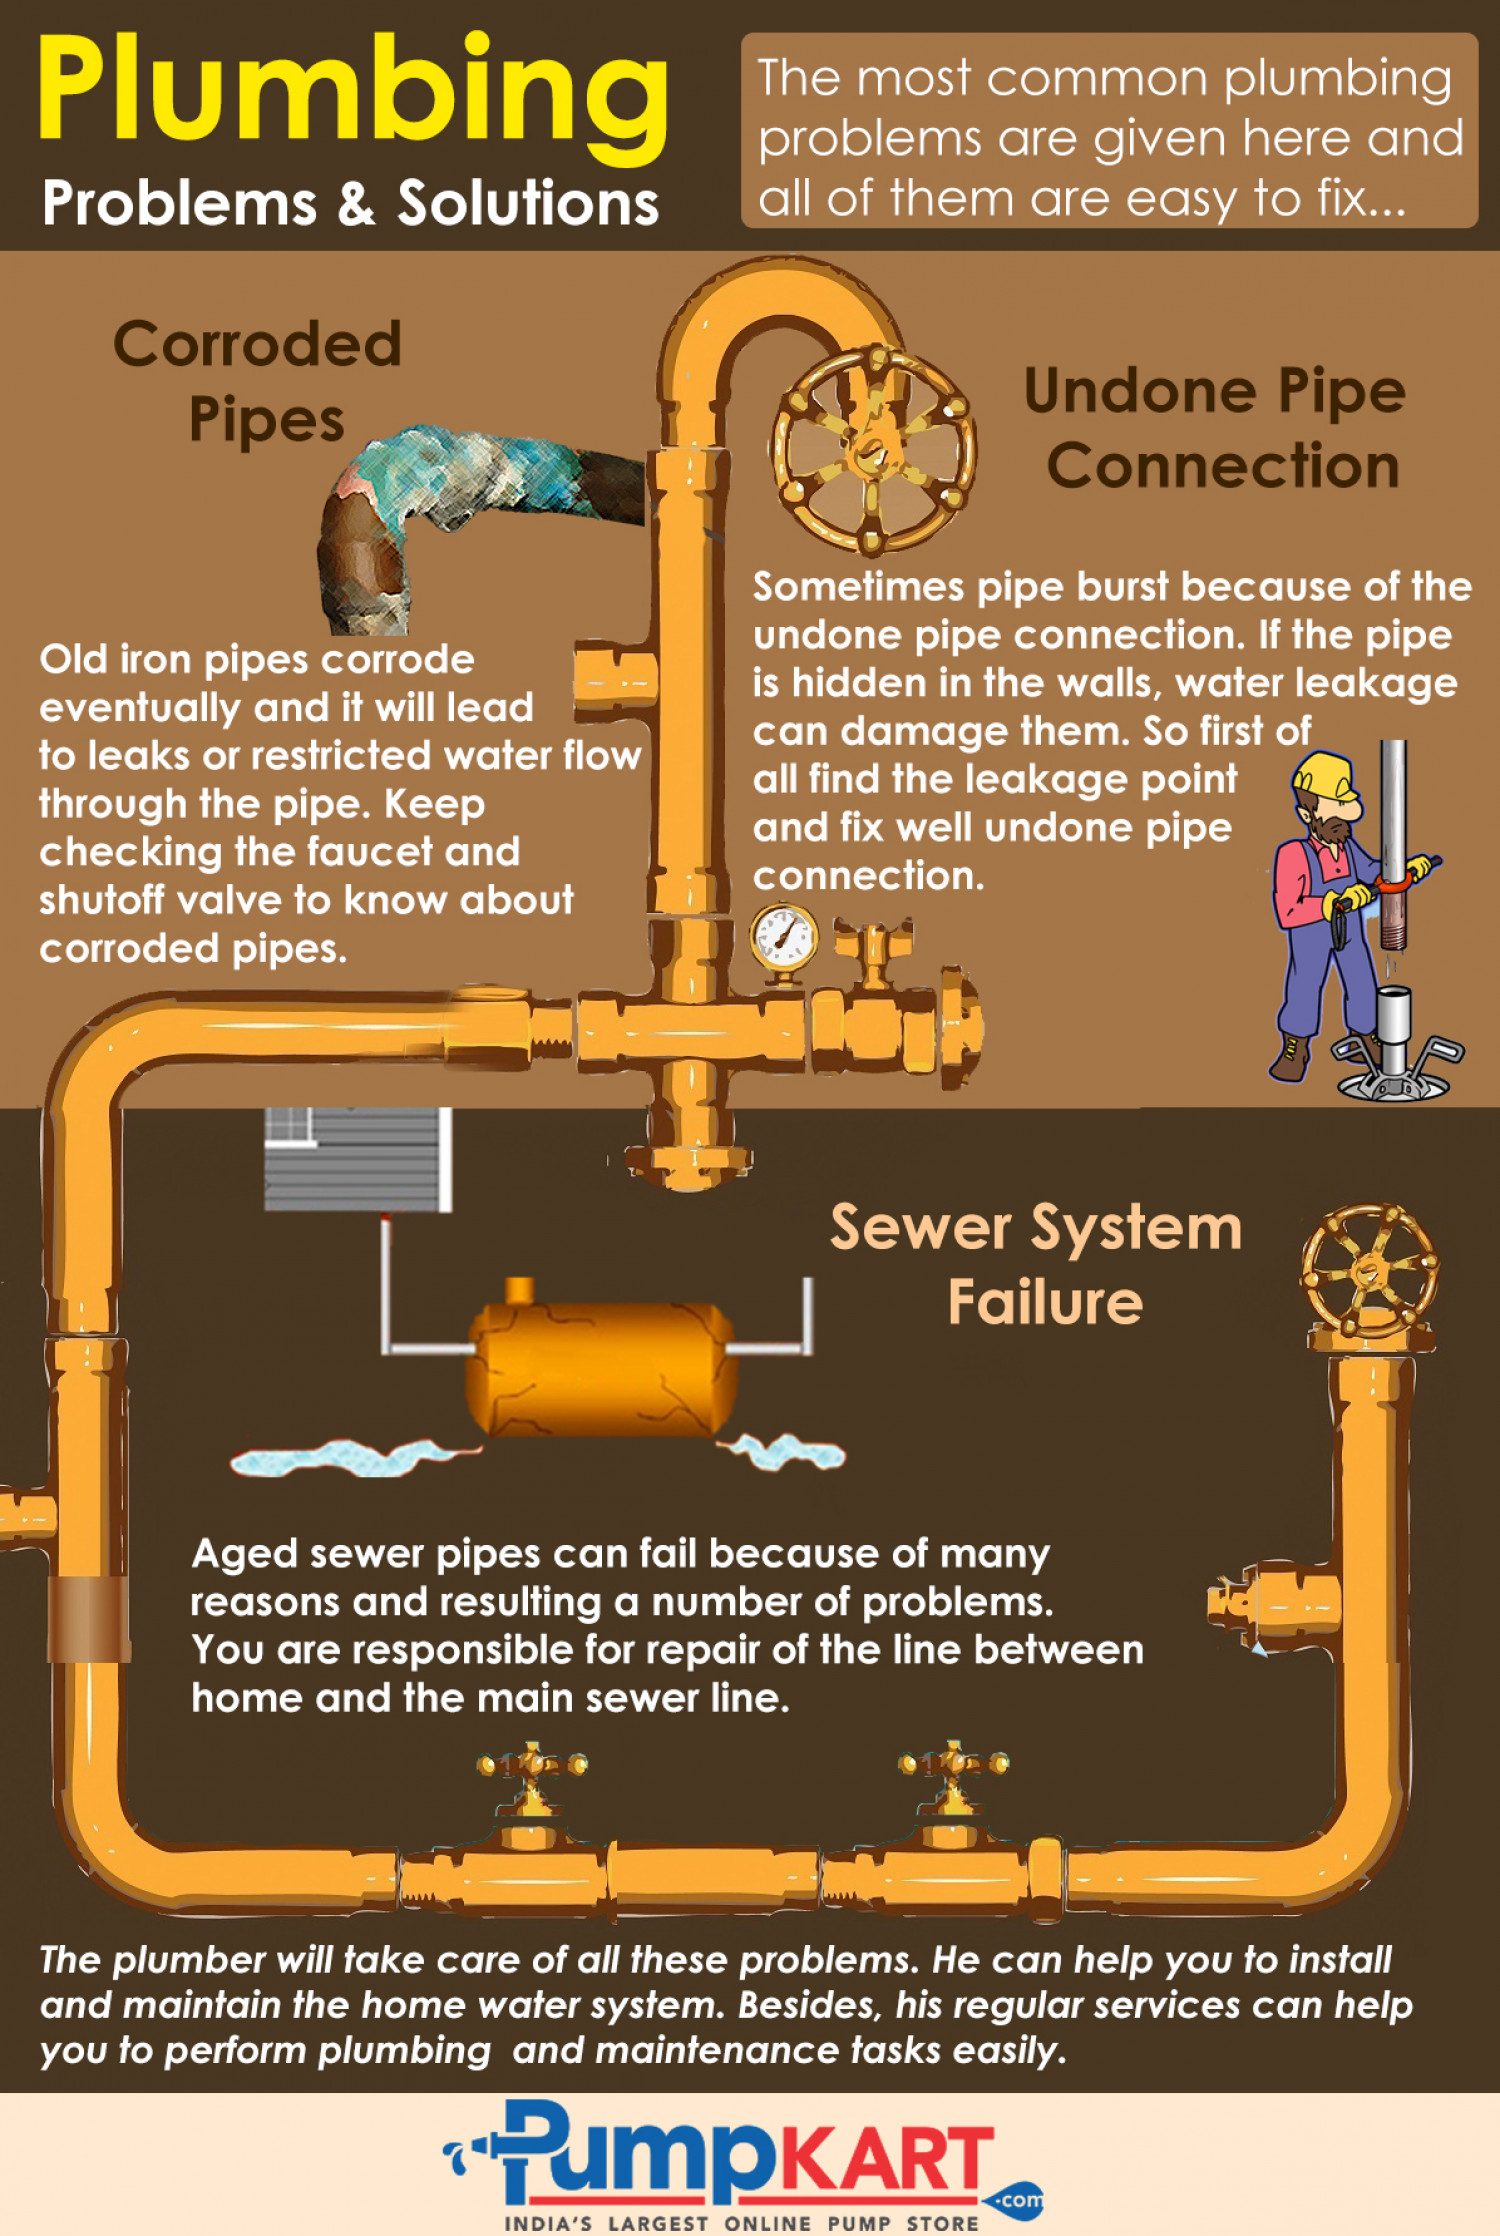 Plumbing Problems and Solutions | Visual.ly